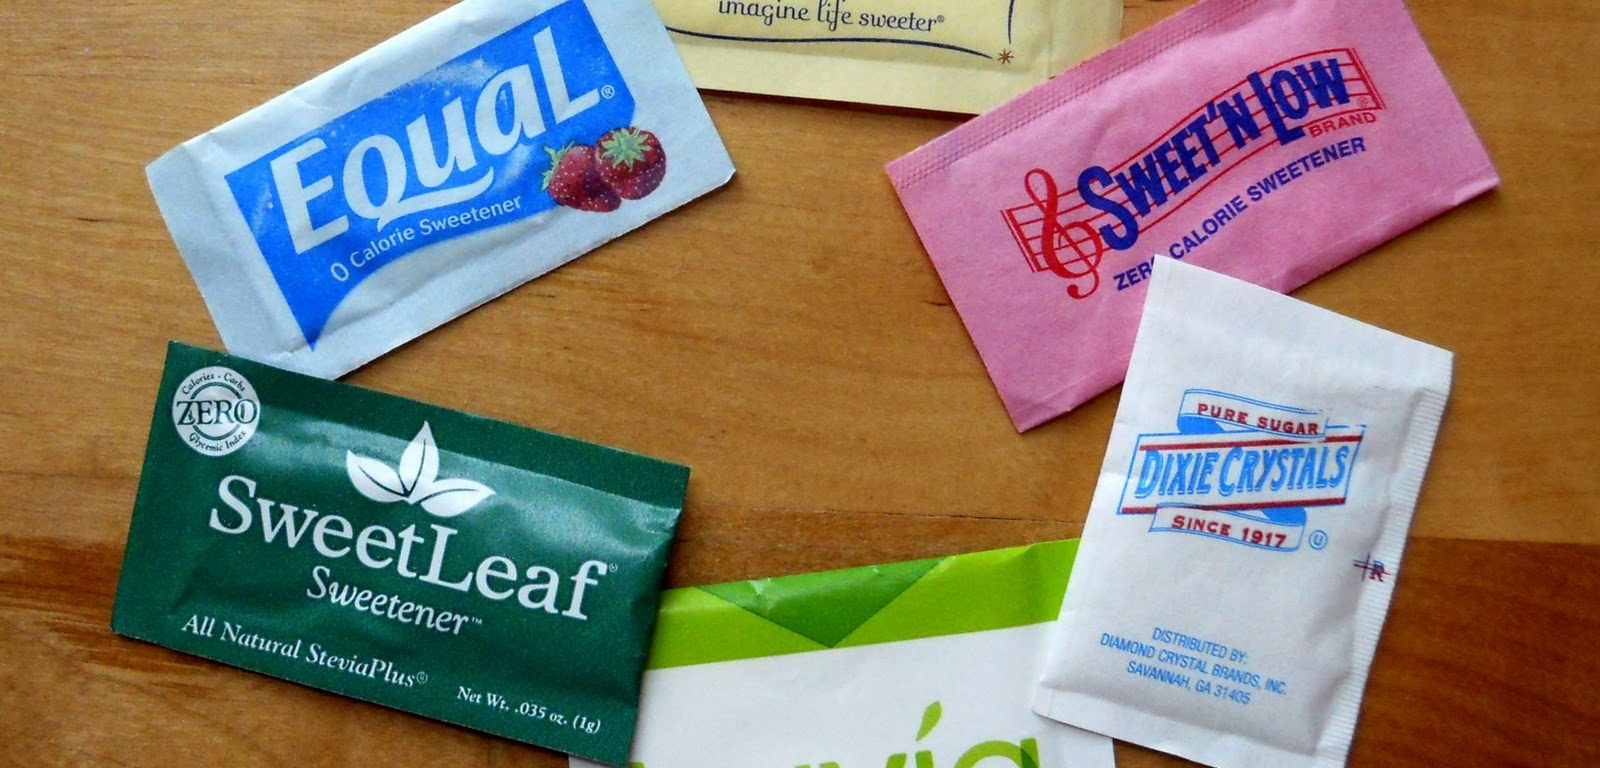 Real Talk: Are Artificial Sweeteners Safe for Consumption